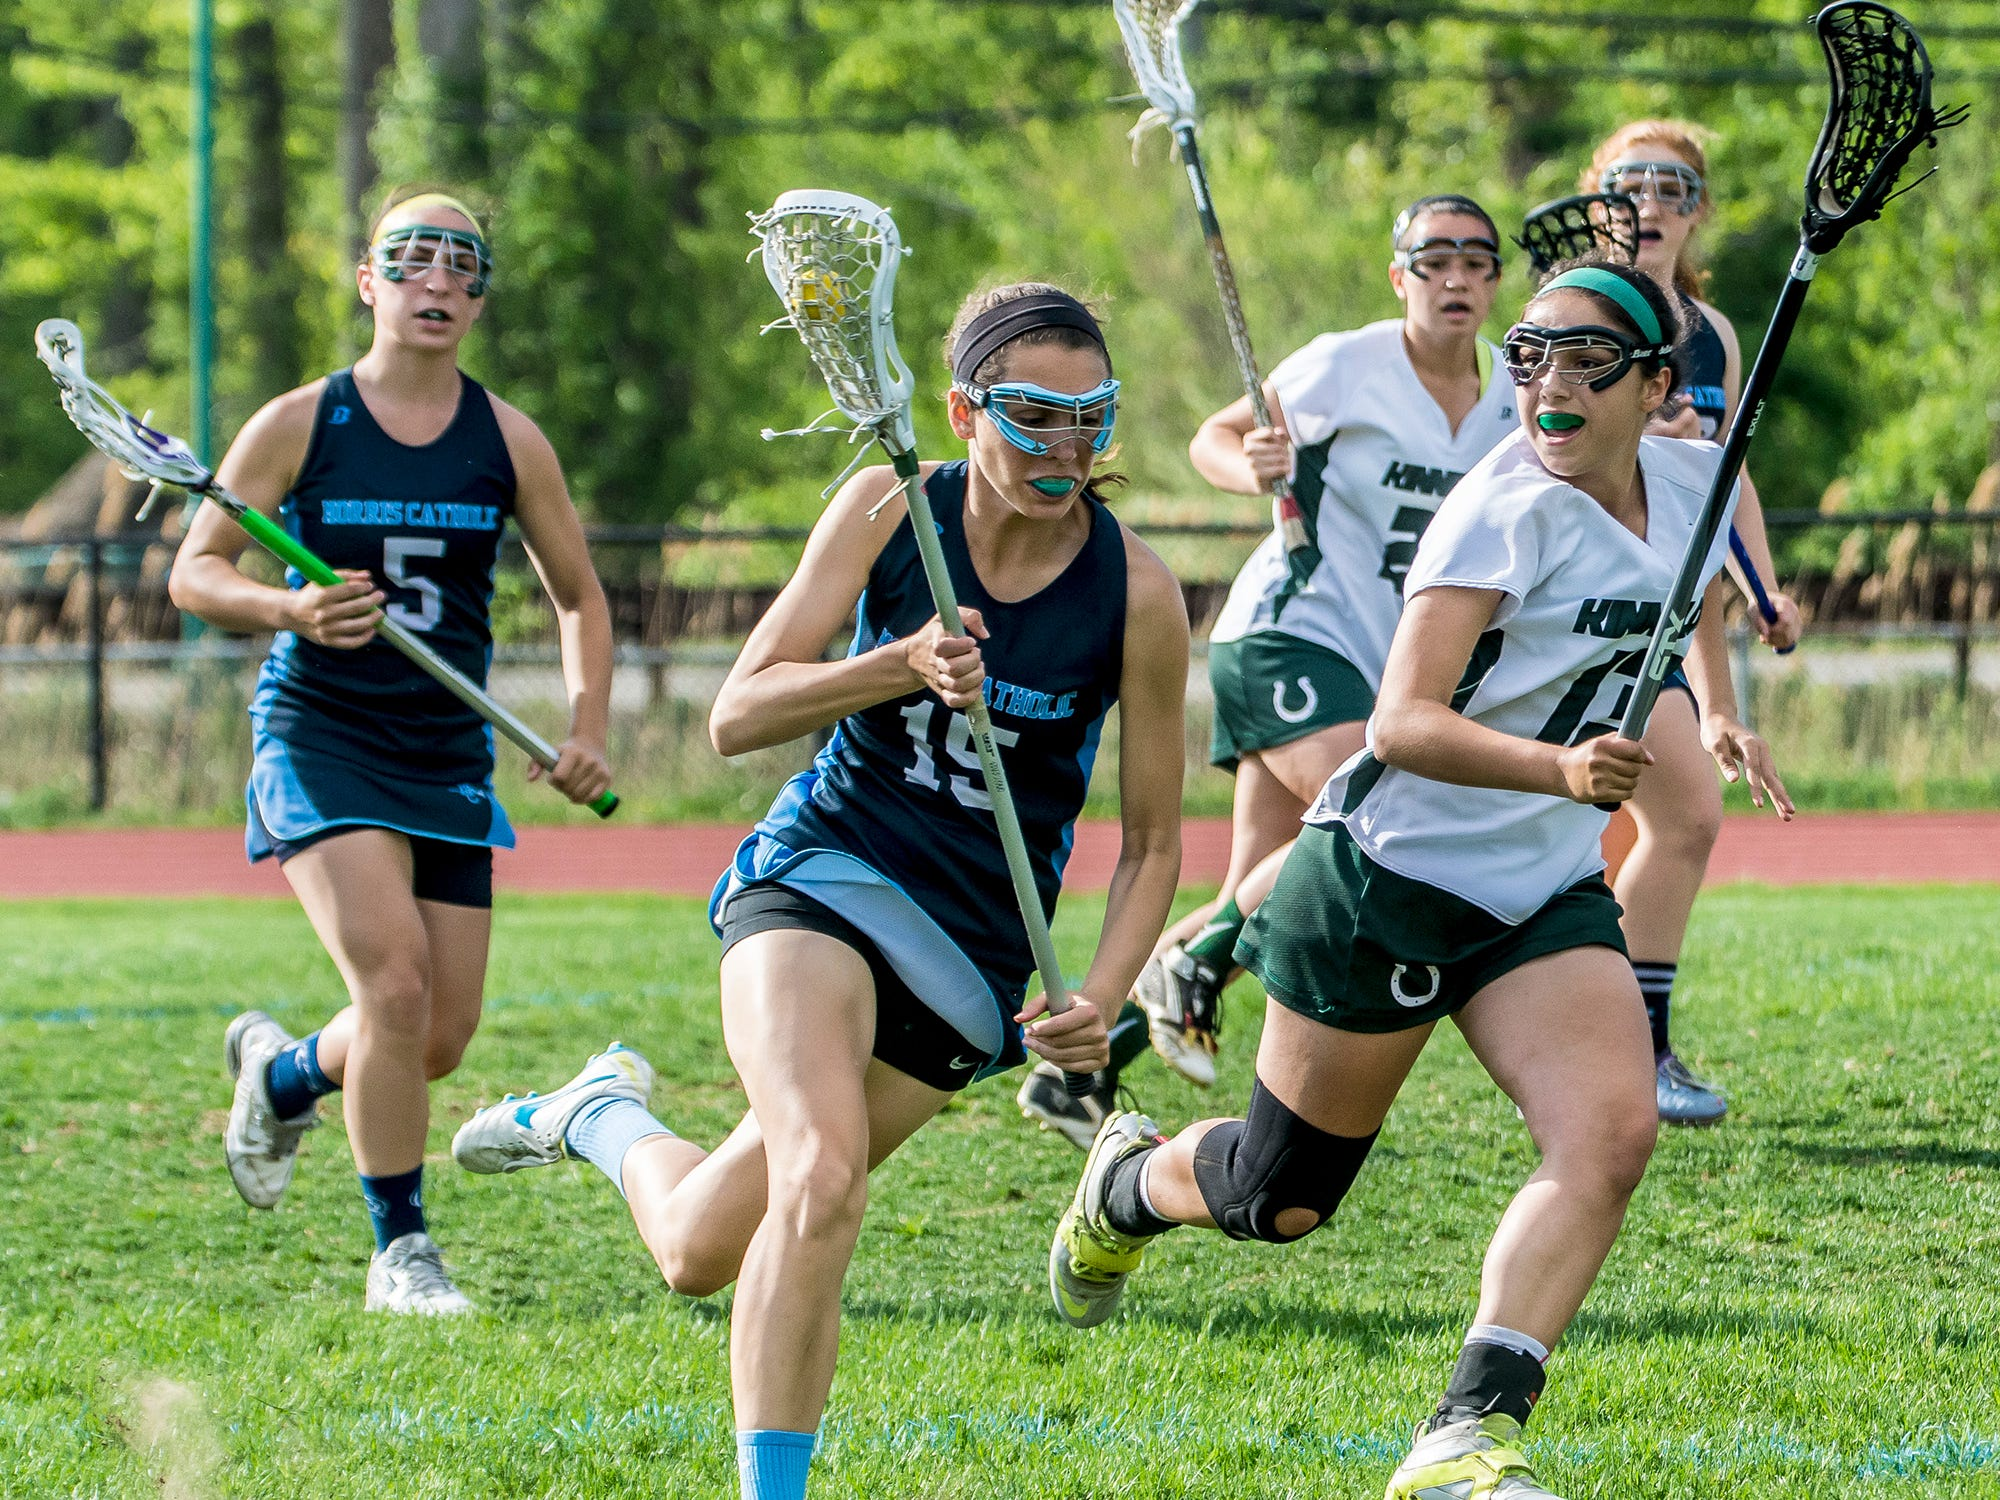 Morris Catholic's Kate Feeney (15) races downfield with the ball while chased by Kinnelon's Katie Bonnano (13) on Monday. Morris Catholic will face No. 1 Oak Knoll in the North Group I Tournament quarterfinals on Monday.